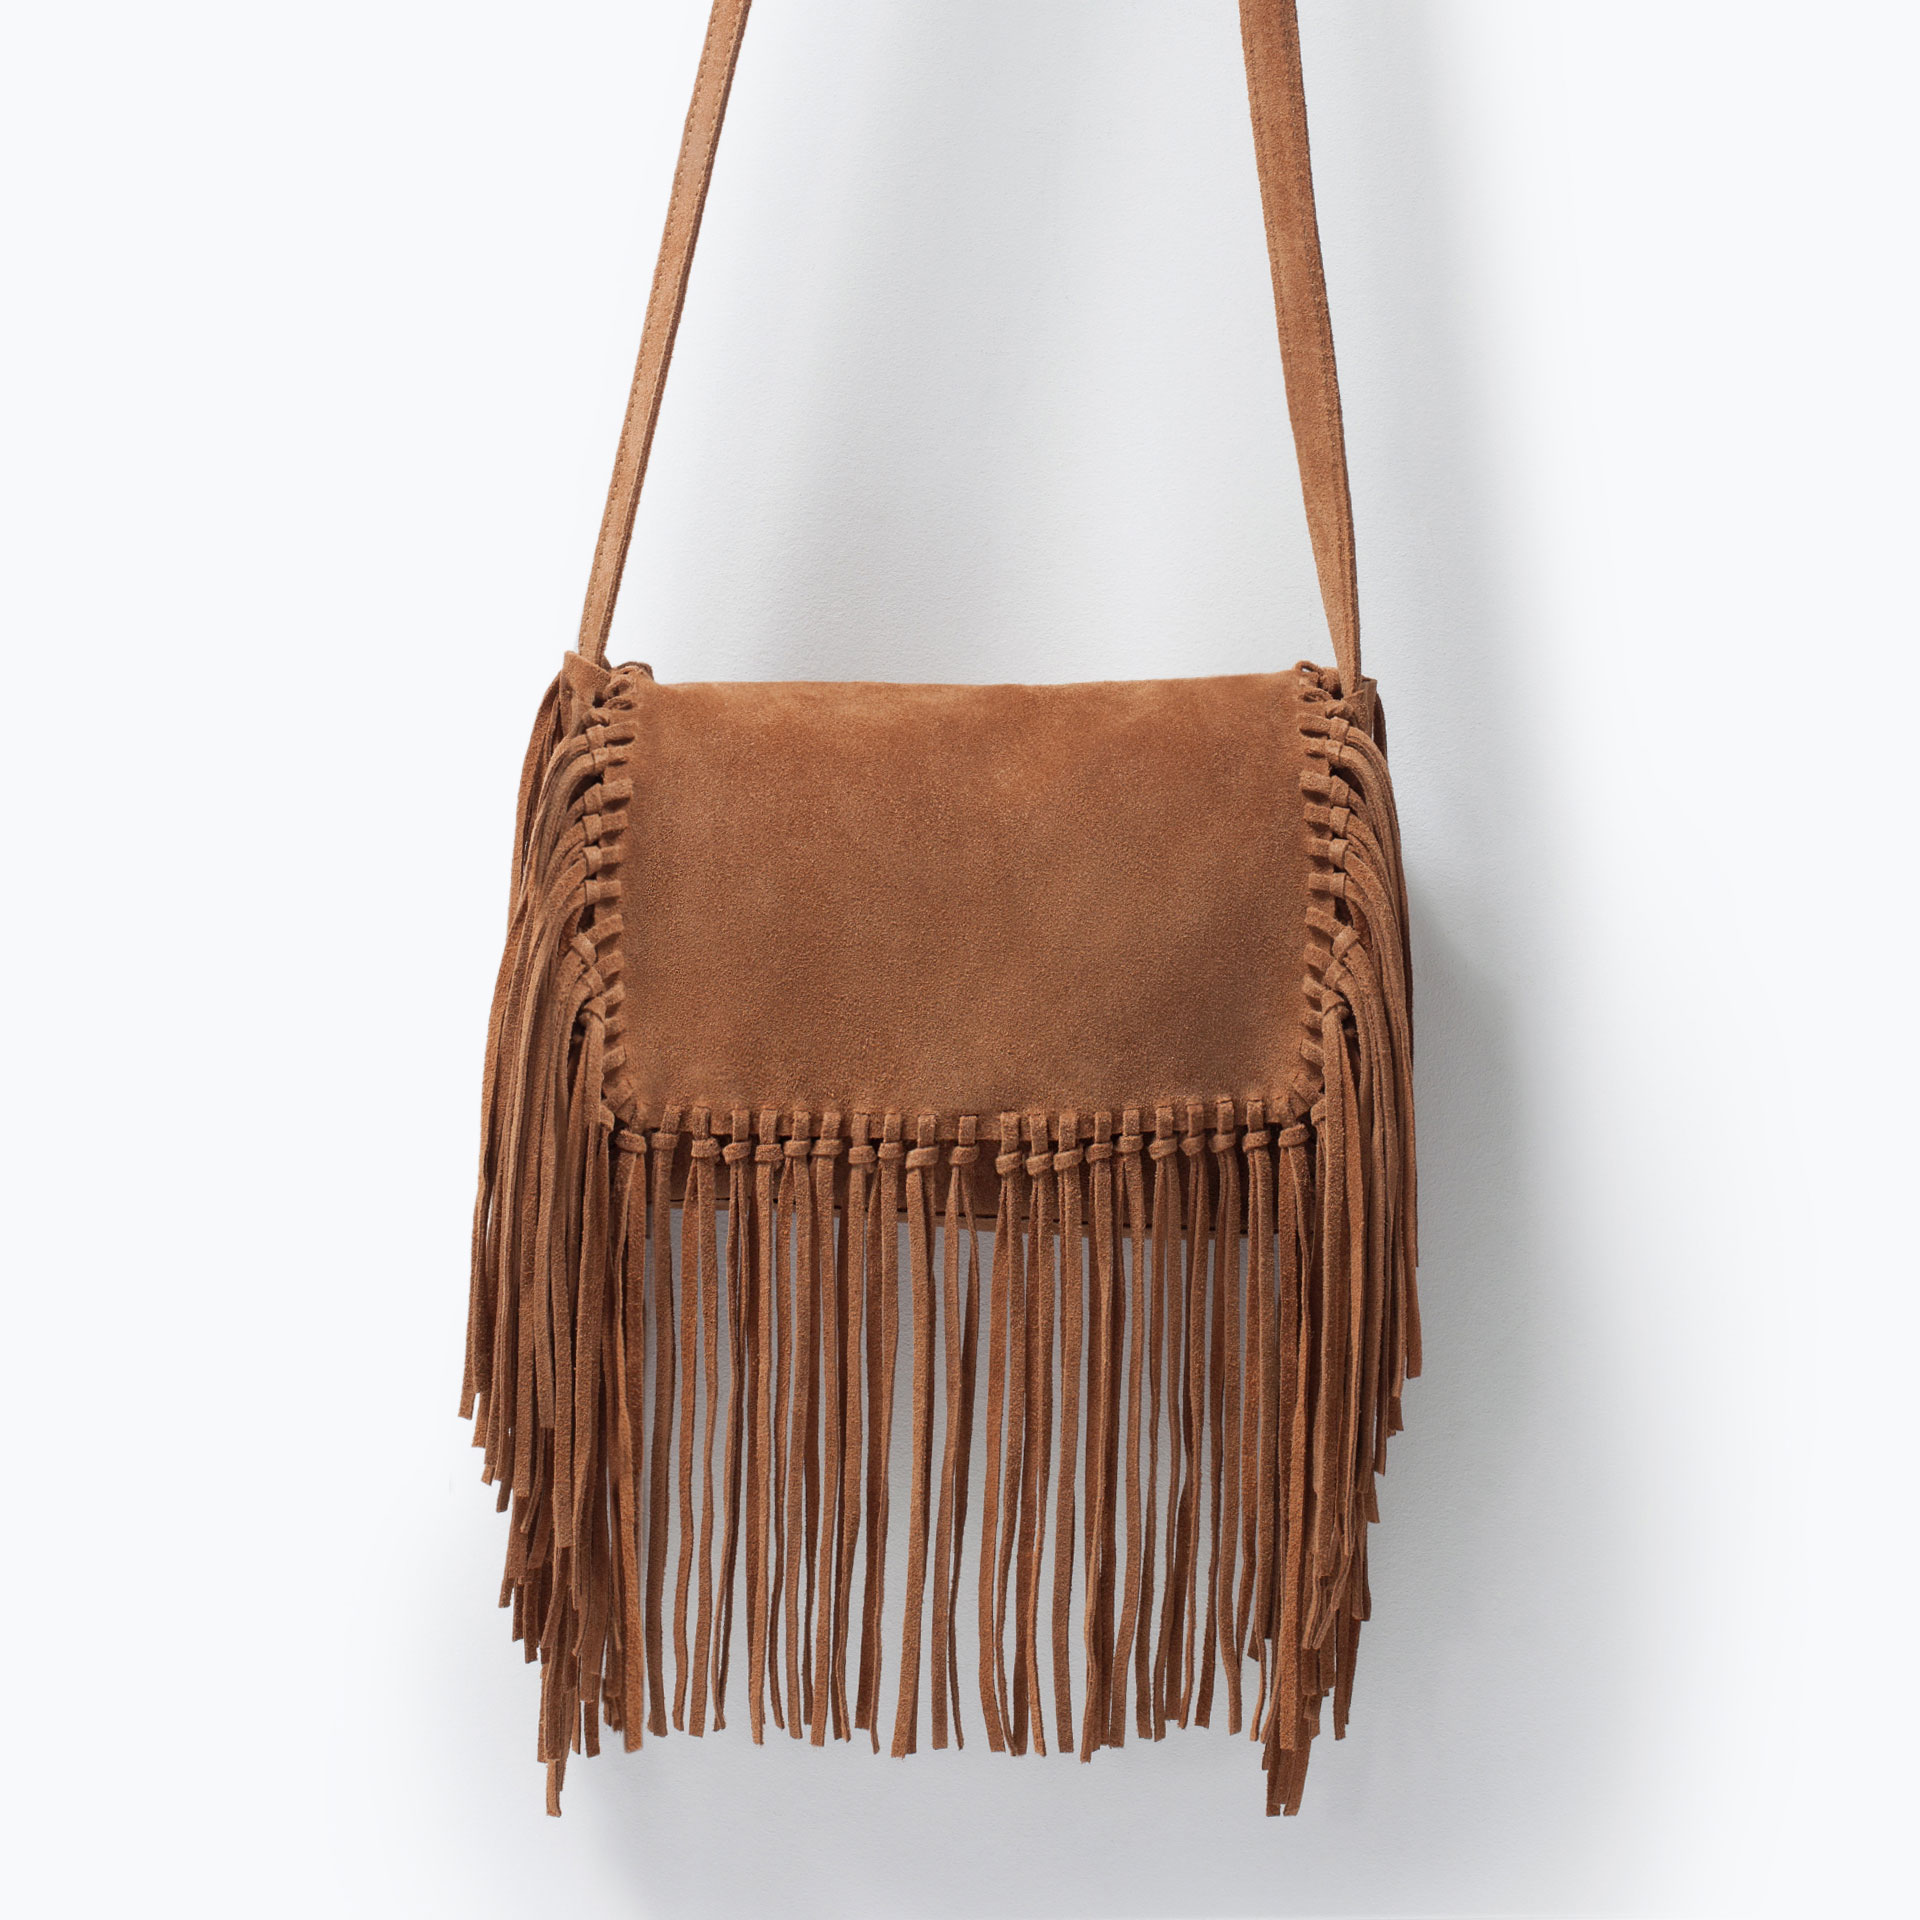 8 Bags To Embrace Fringe - Bags Lounge